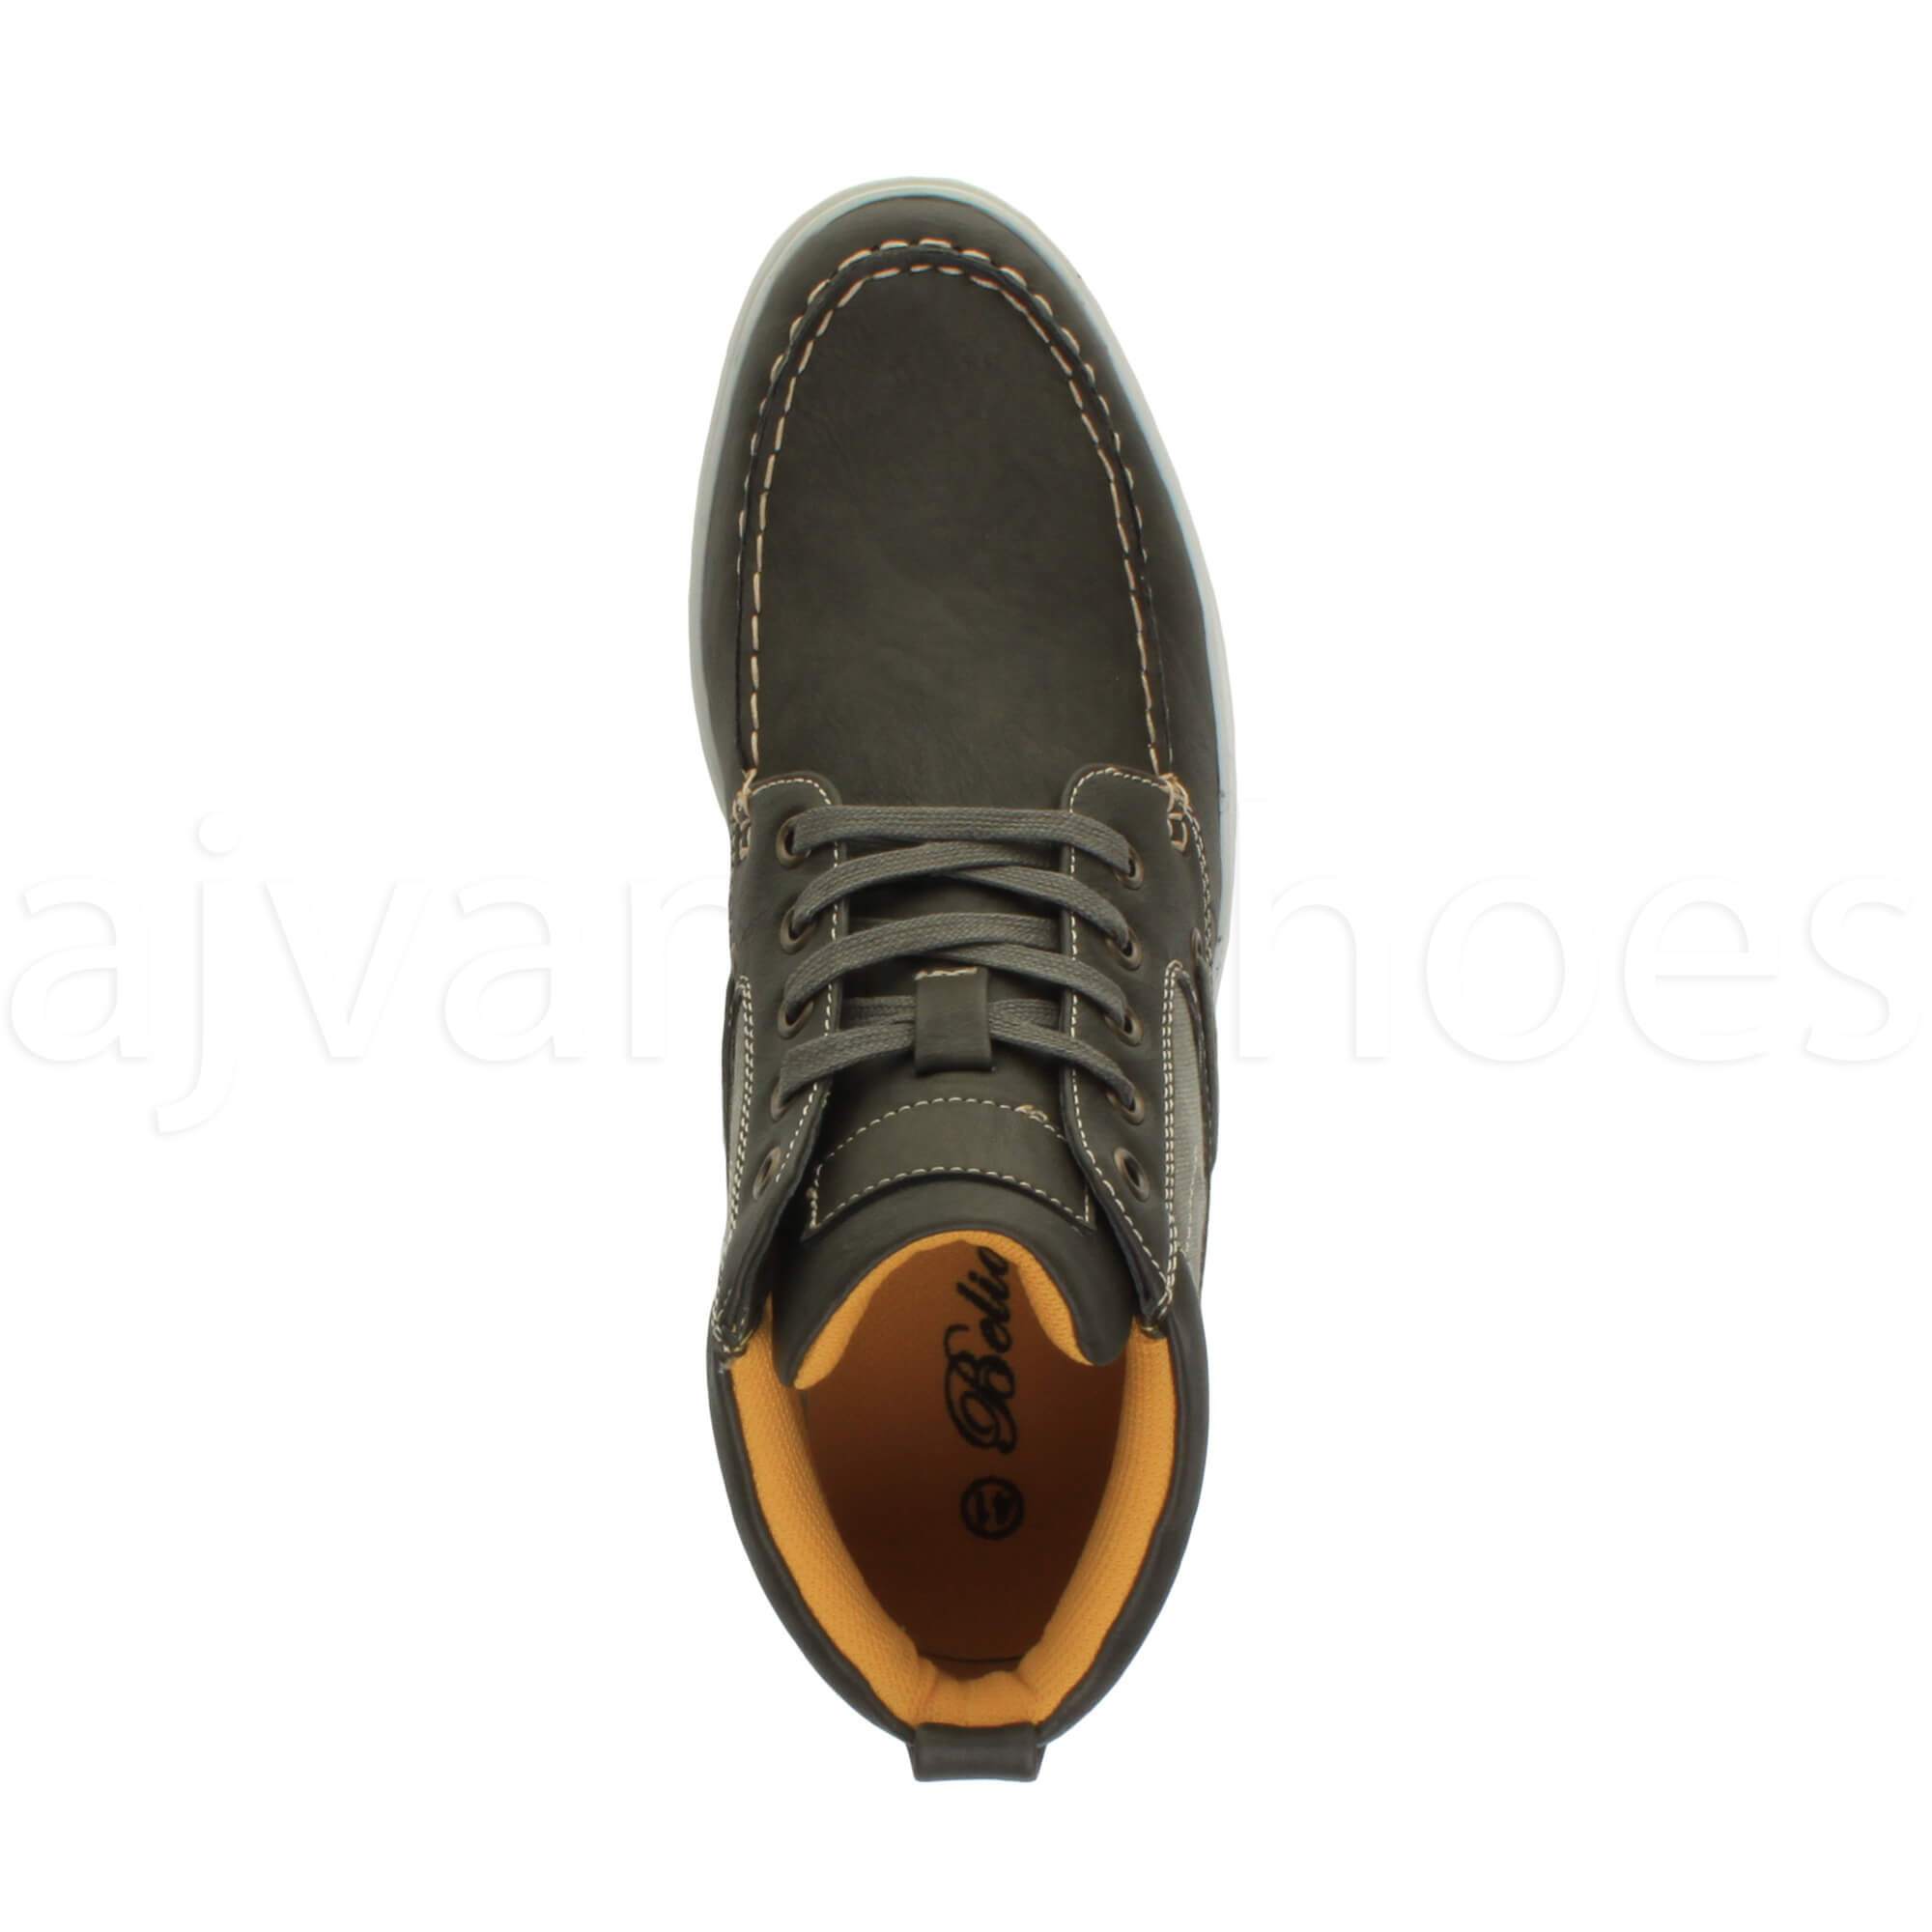 MENS-FLAT-LACE-UP-CASUAL-BOAT-CONTRAST-HI-TOP-TRAINERS-ANKLE-BOOTS-PUMPS-SIZE thumbnail 21